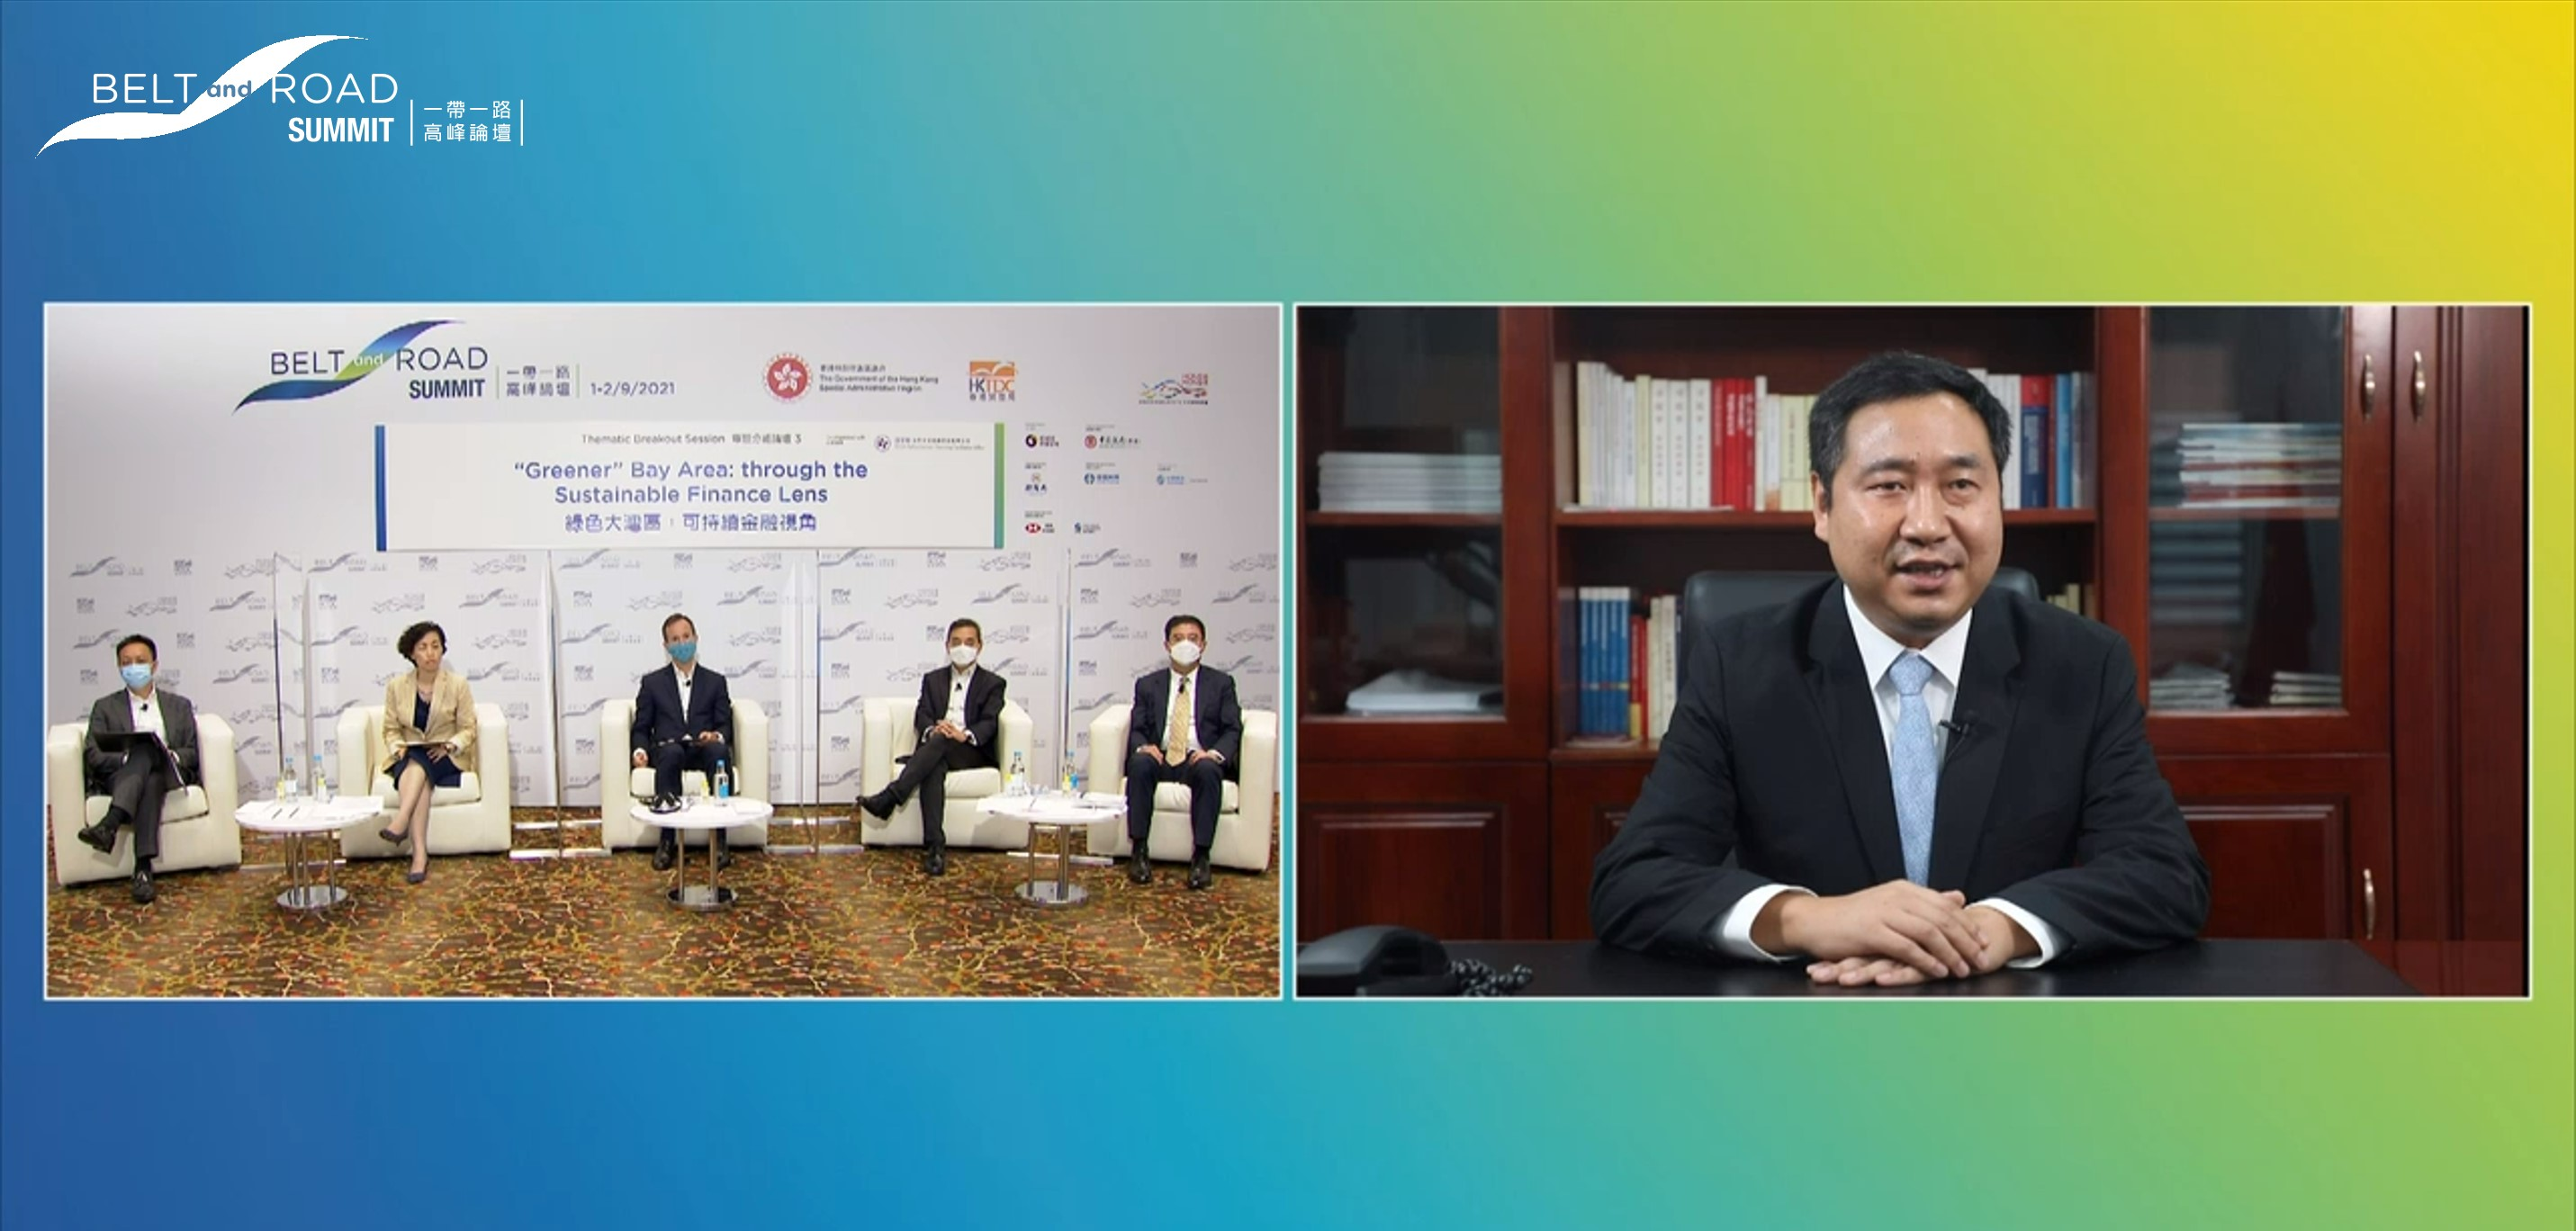 """The HKMA Infrastructure Financing Facilitation Office (IFFO) today (1 September) hosted a panel discussion on """"'Greener' Bay Area: through the Sustainable Finance Lens"""" at the sixth Belt and Road Summit. The event commenced with opening remarks from Mr Yu Haiping (first right), Director General, Guangdong Financial Supervisory Authority. The panel discussion was moderated by Mr Darryl Chan (first left), Executive Director (External) of the HKMA and Deputy Director of the IFFO, and is joined by (second left onwards): Ms Sammie Leung, ESG Partner, PwC Mainland China and Hong Kong; Mr Neil Johnson, Managing Director, Macquarie Asset Management; Mr Ed Lam, Chief Executive Officer, LFX; and Mr Frank Fang, Head of Commercial Banking, The Hongkong and Shanghai Banking Corporation Limited."""